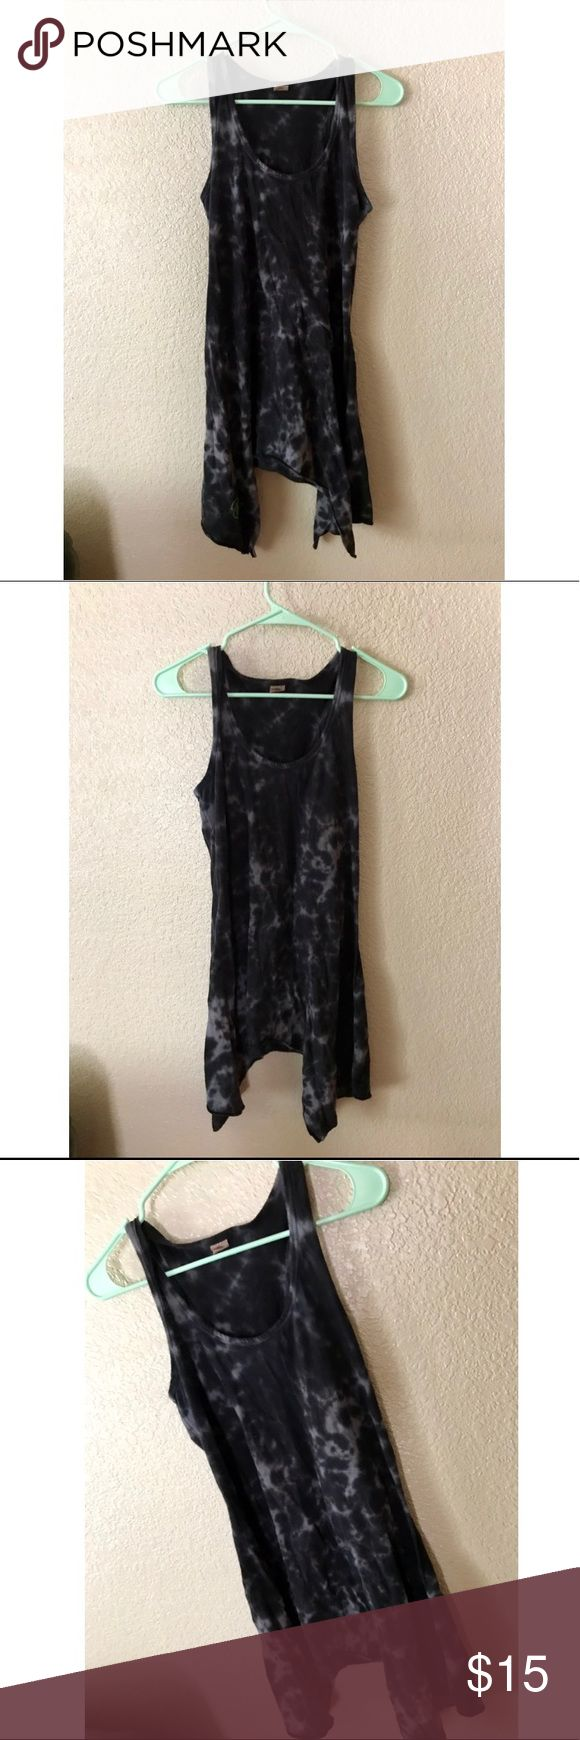 "Flowy Tye-Dye Summer Dress This gray and black tye dye dress is perfect for so many summer occasions! Super cute and perfect to wear out or over a bathing suit :) small ""wine country"" logo at the bottom but isn't always showing. Brand is Tommy Bahamas Southern breeze. No tag on inside with size but it fits me and I wear a medium, may also fit large. Brandy Melville Dresses"